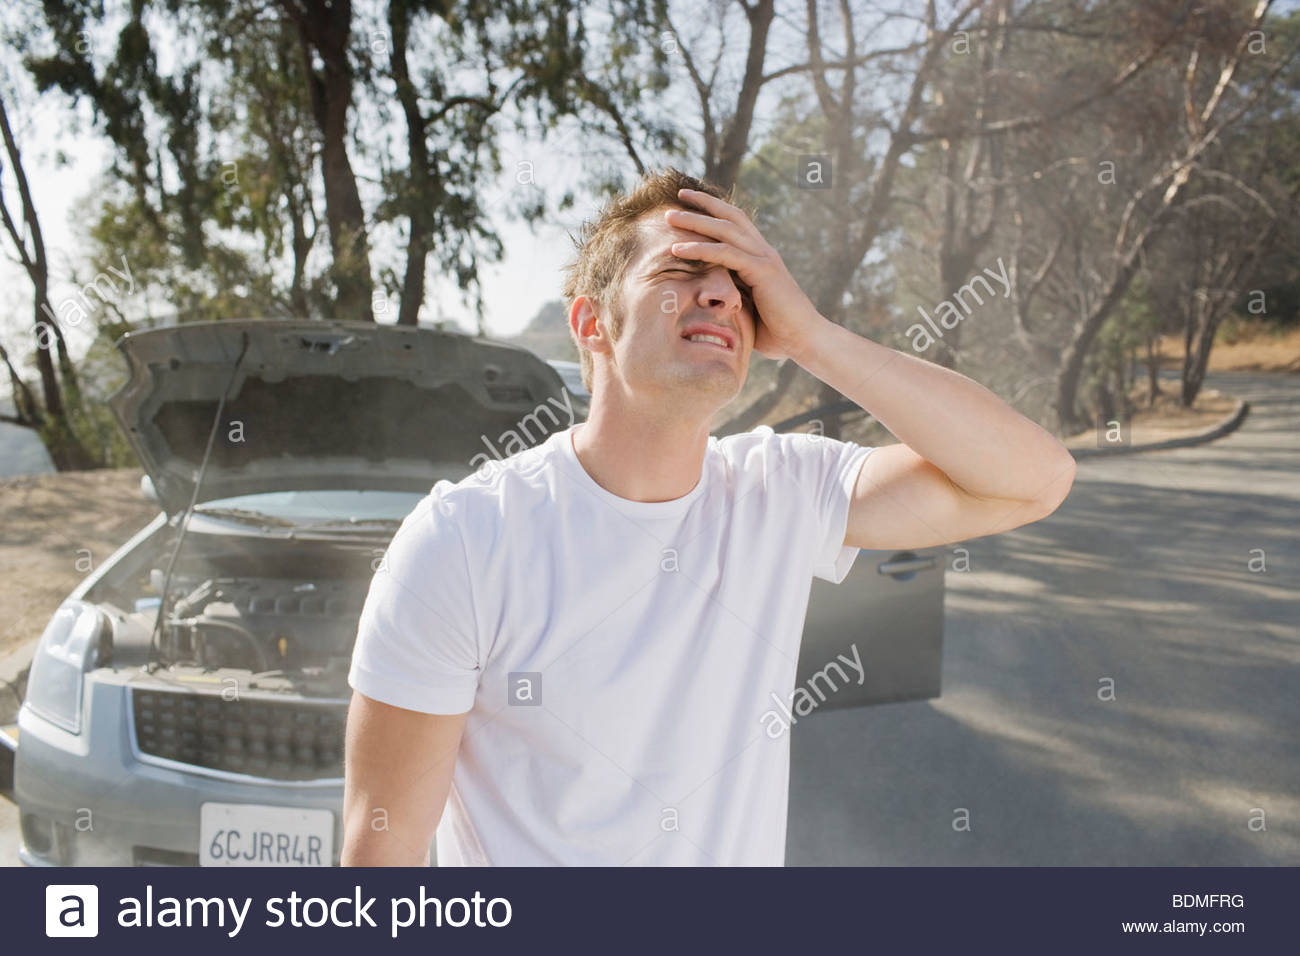 Frustrated man standing near broken down car - Stock Image